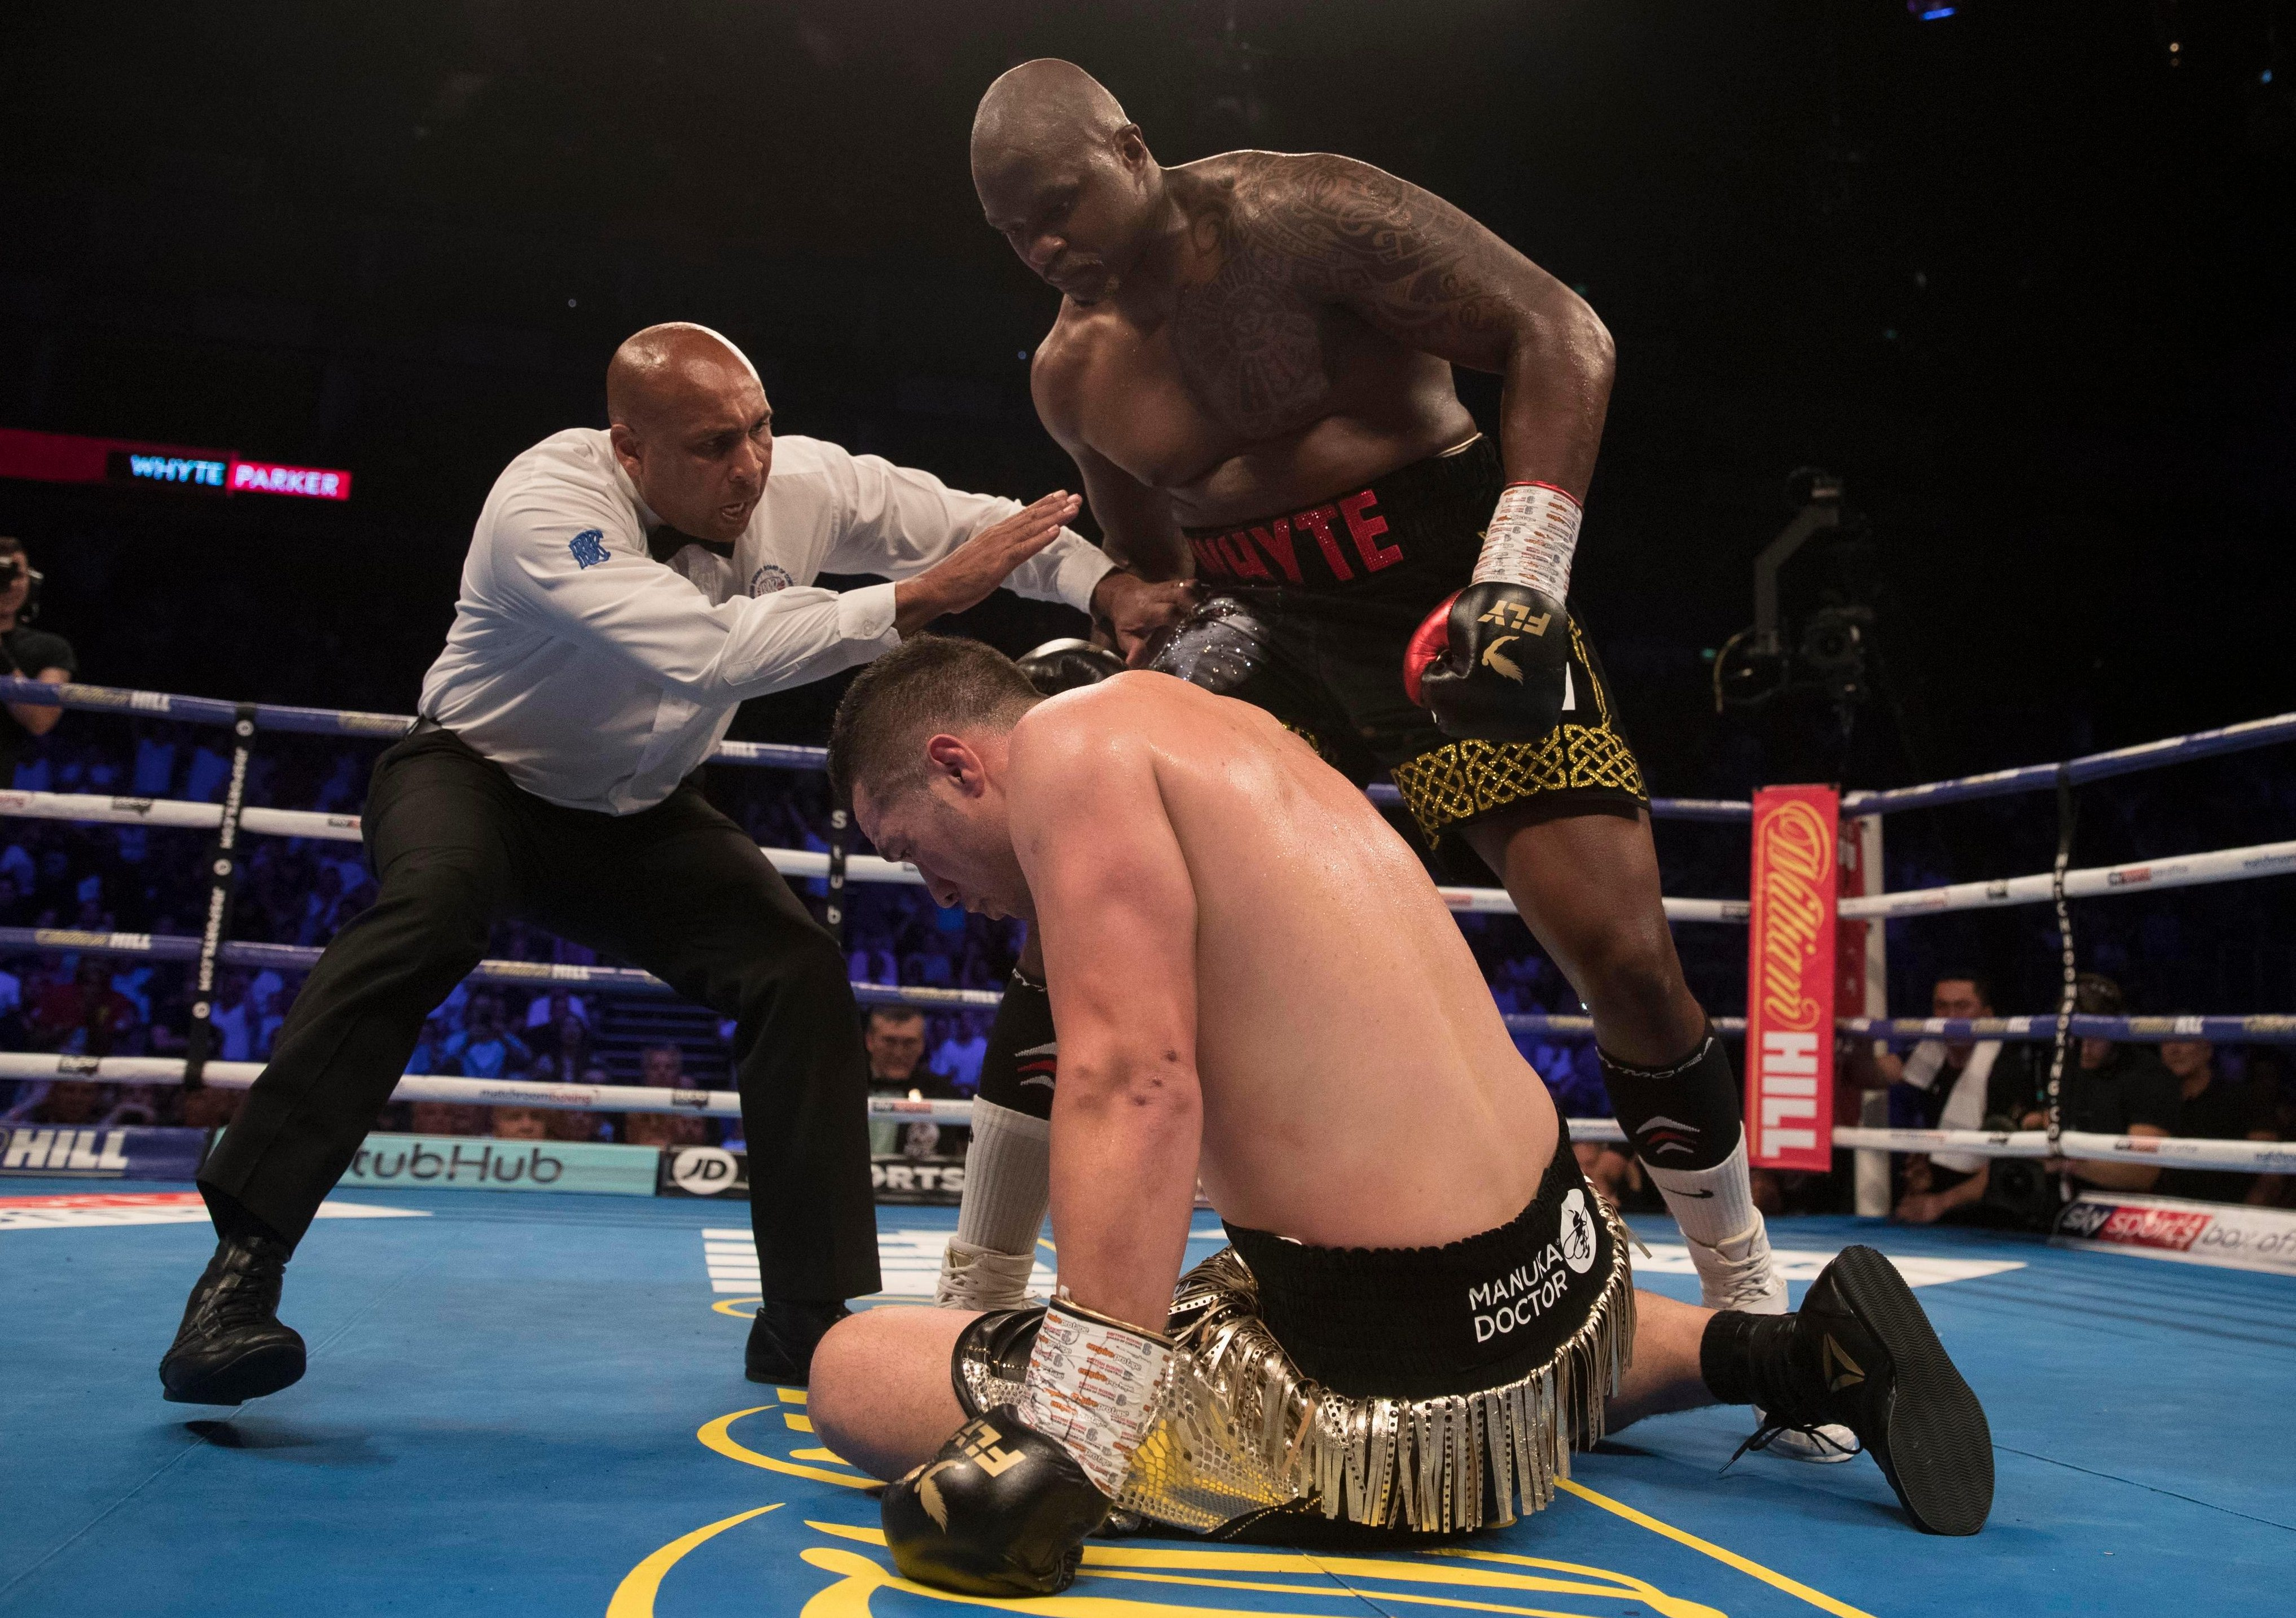 The Kiwi was floored by a headbutt in the second that was counted as a knockdown